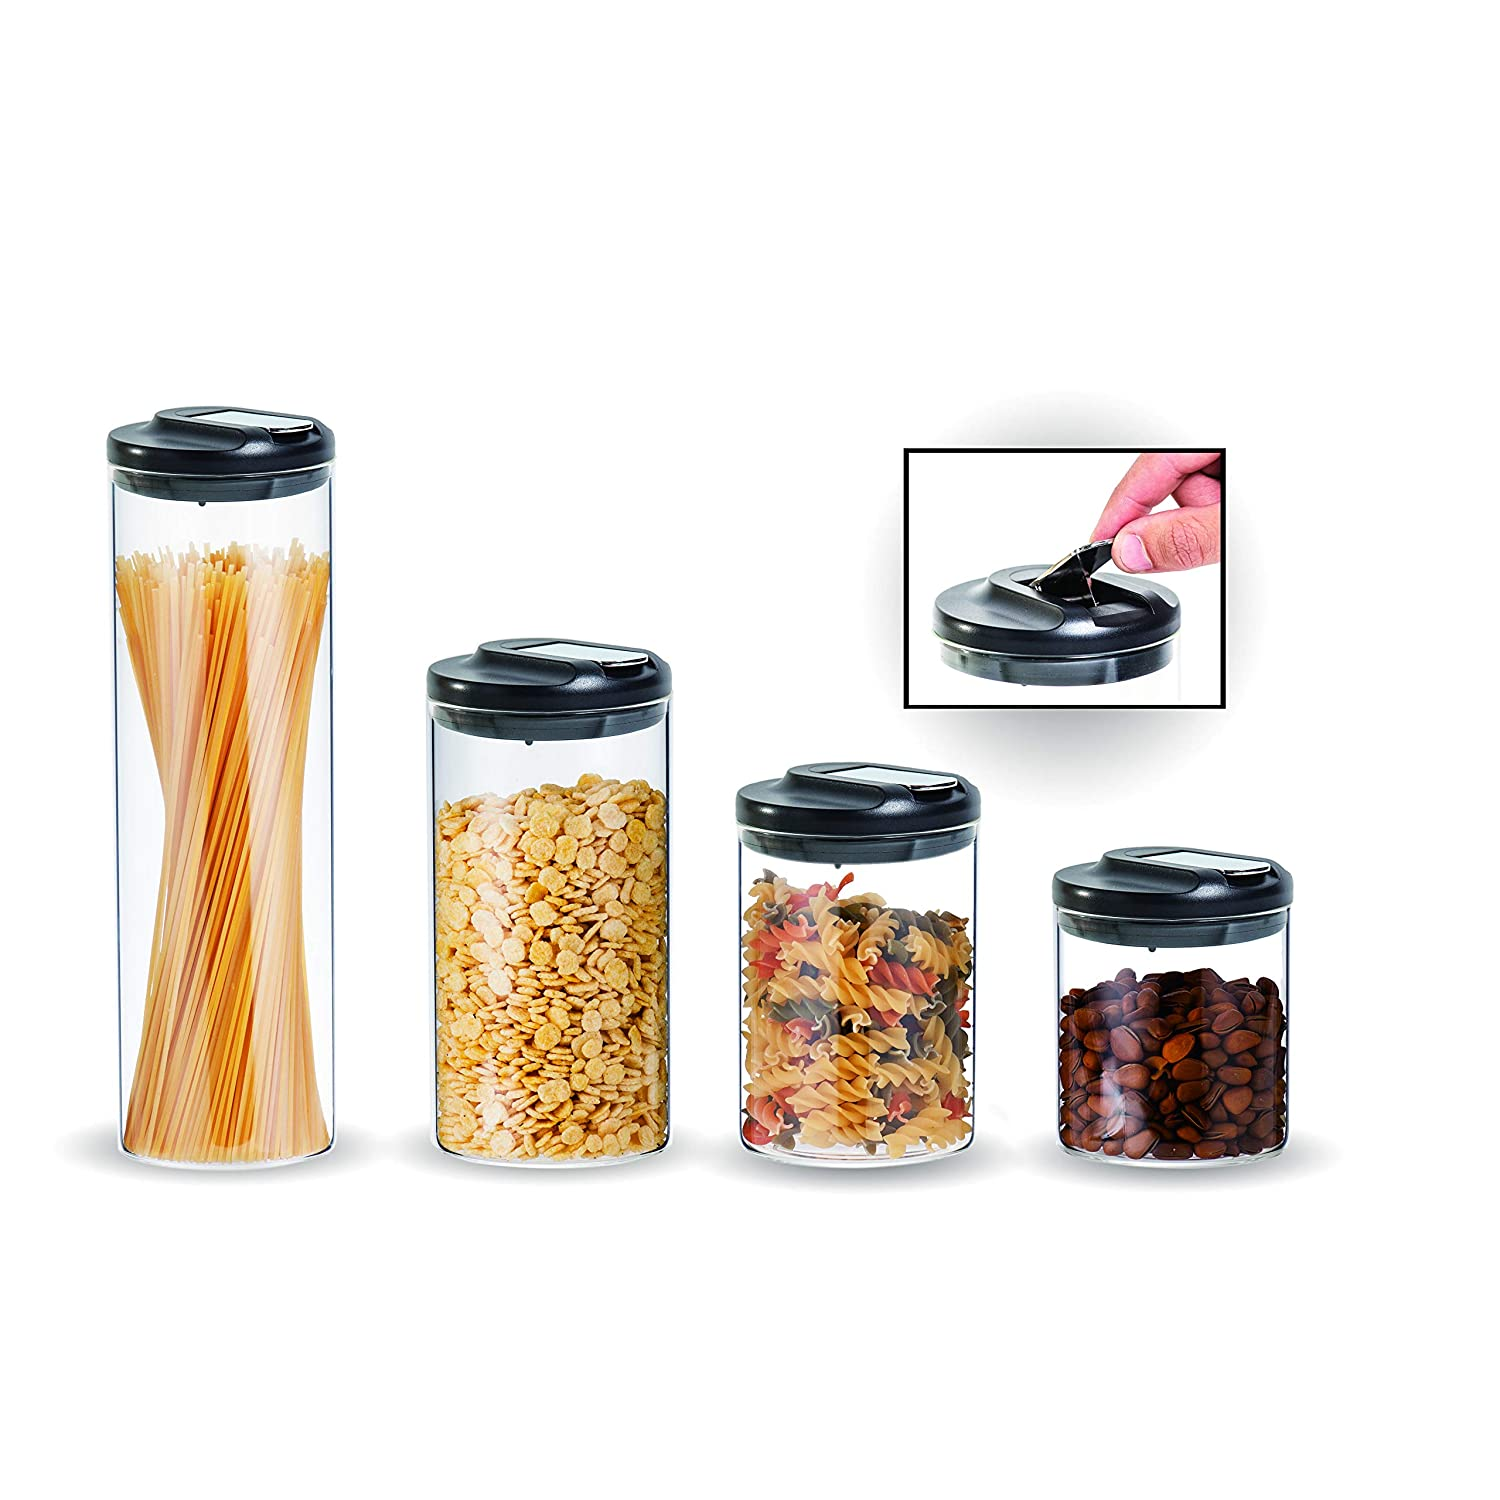 RhinoGlass 4-piece kitchen storage container set, heavy-duty airtight lid, premium zinc-silicone seal, durable food-safe borosilicate glass jars, perfect for cereal, pasta, pet treats, snacks, baking